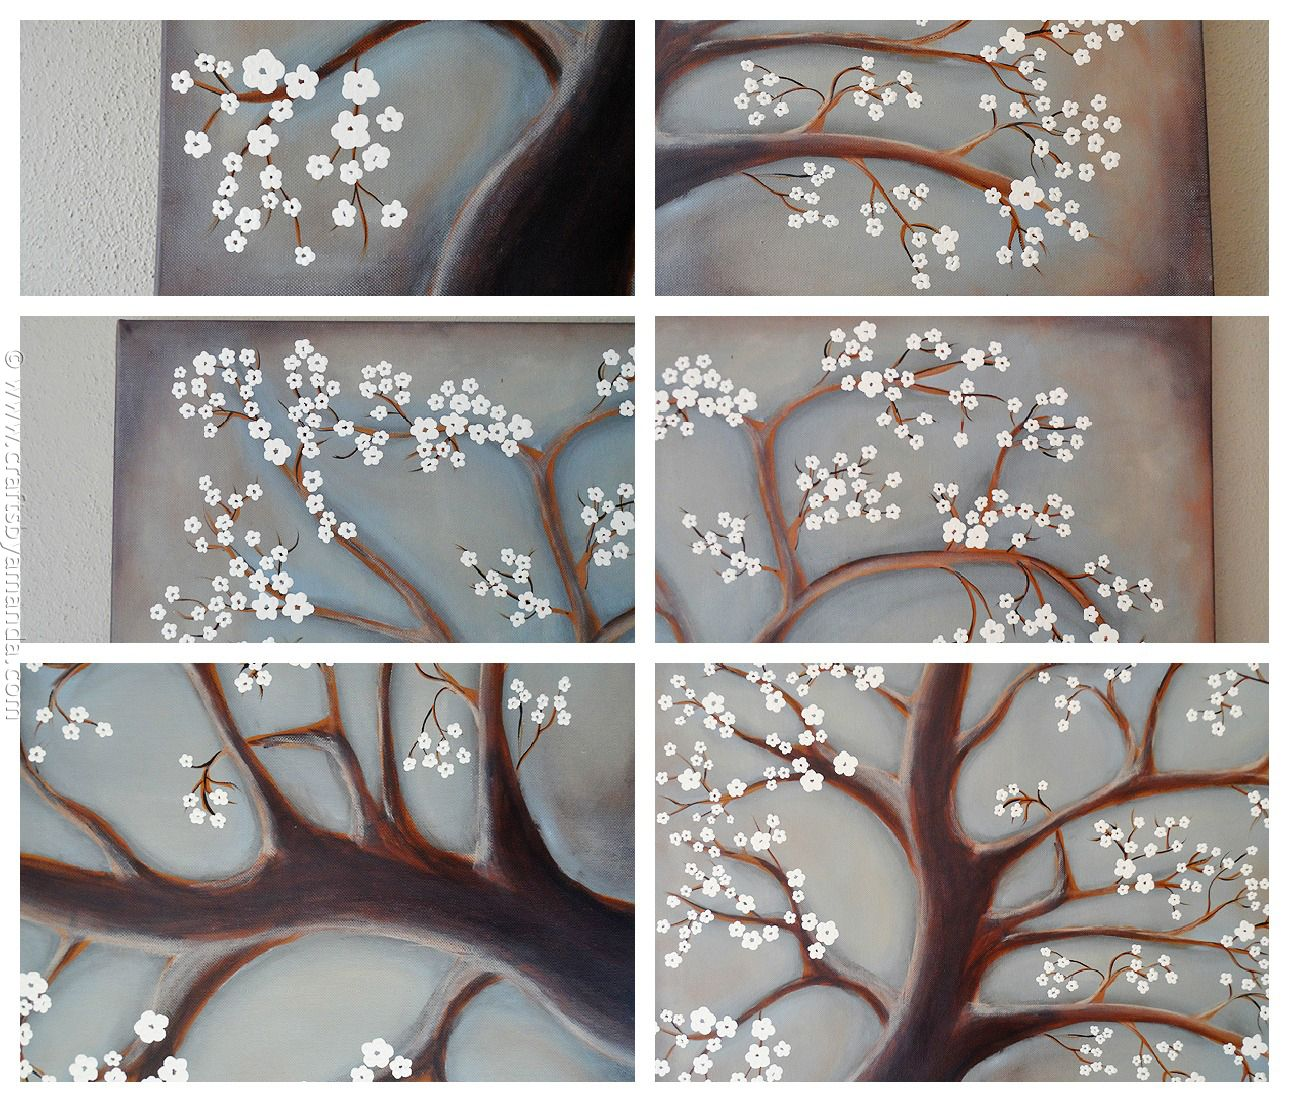 White Cherry Blossom Tree Painting Crafts By Amanda Tree Painting Cherry Blossom Tree White Cherry Blossom